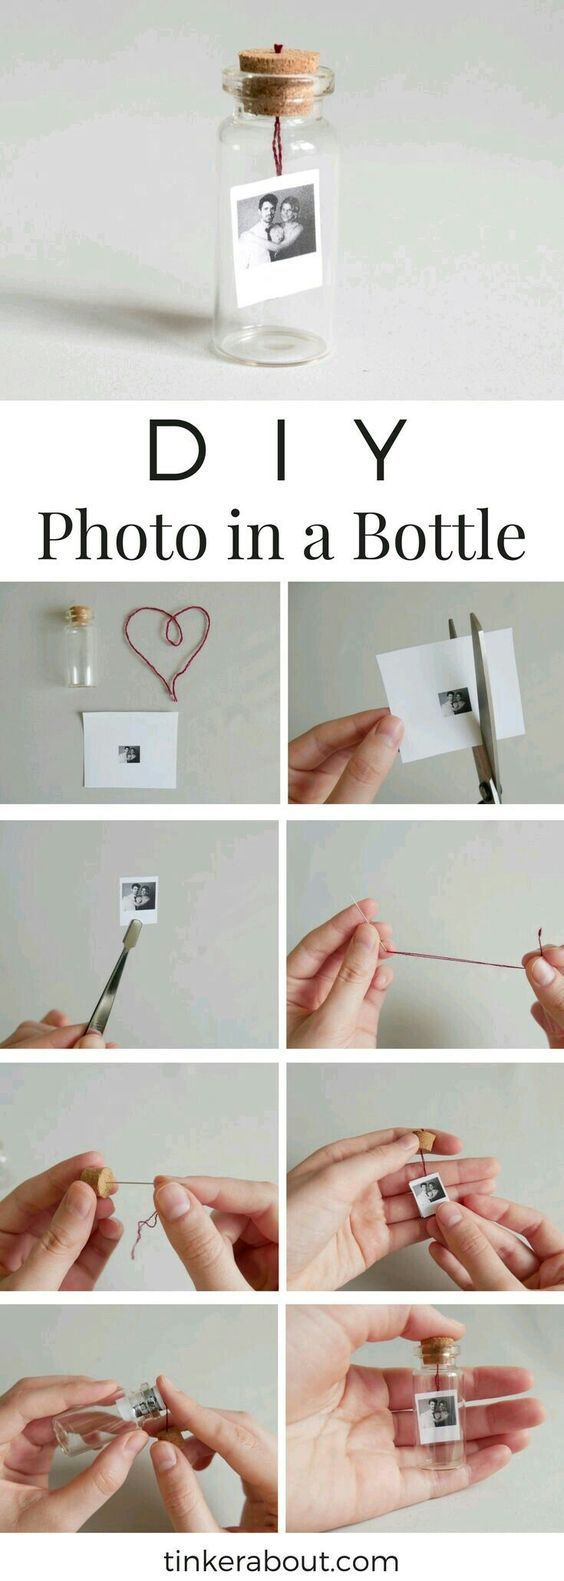 Cheap and Easy DIY Christmas Gifts for Him - Photo in a Bottle #diygiftsforhim